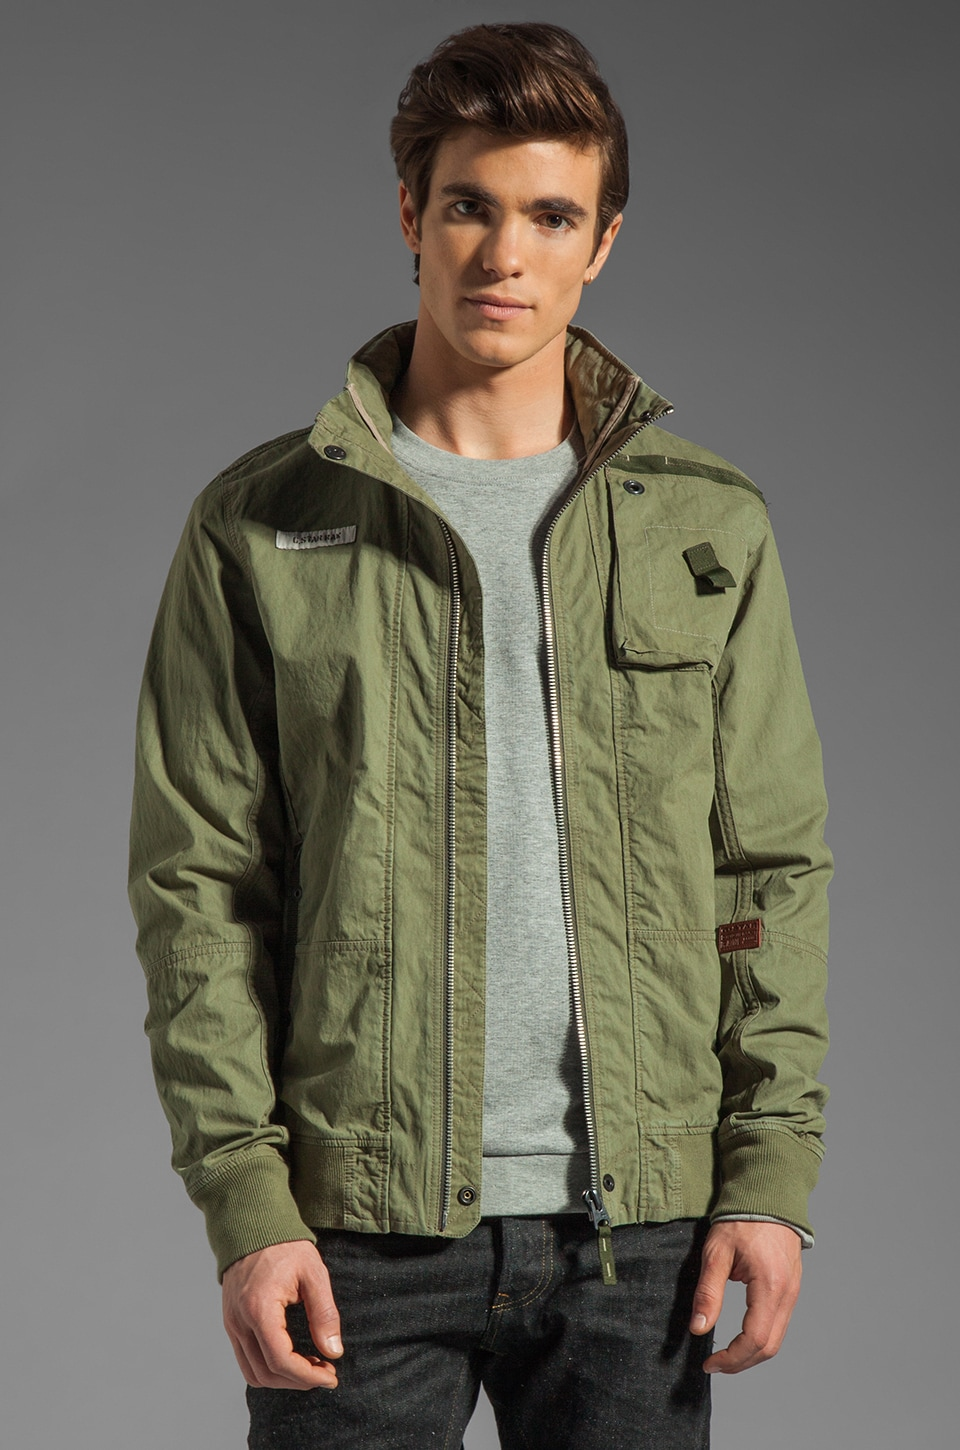 G-Star RCO Lockhart Bomber Jacket in Sage